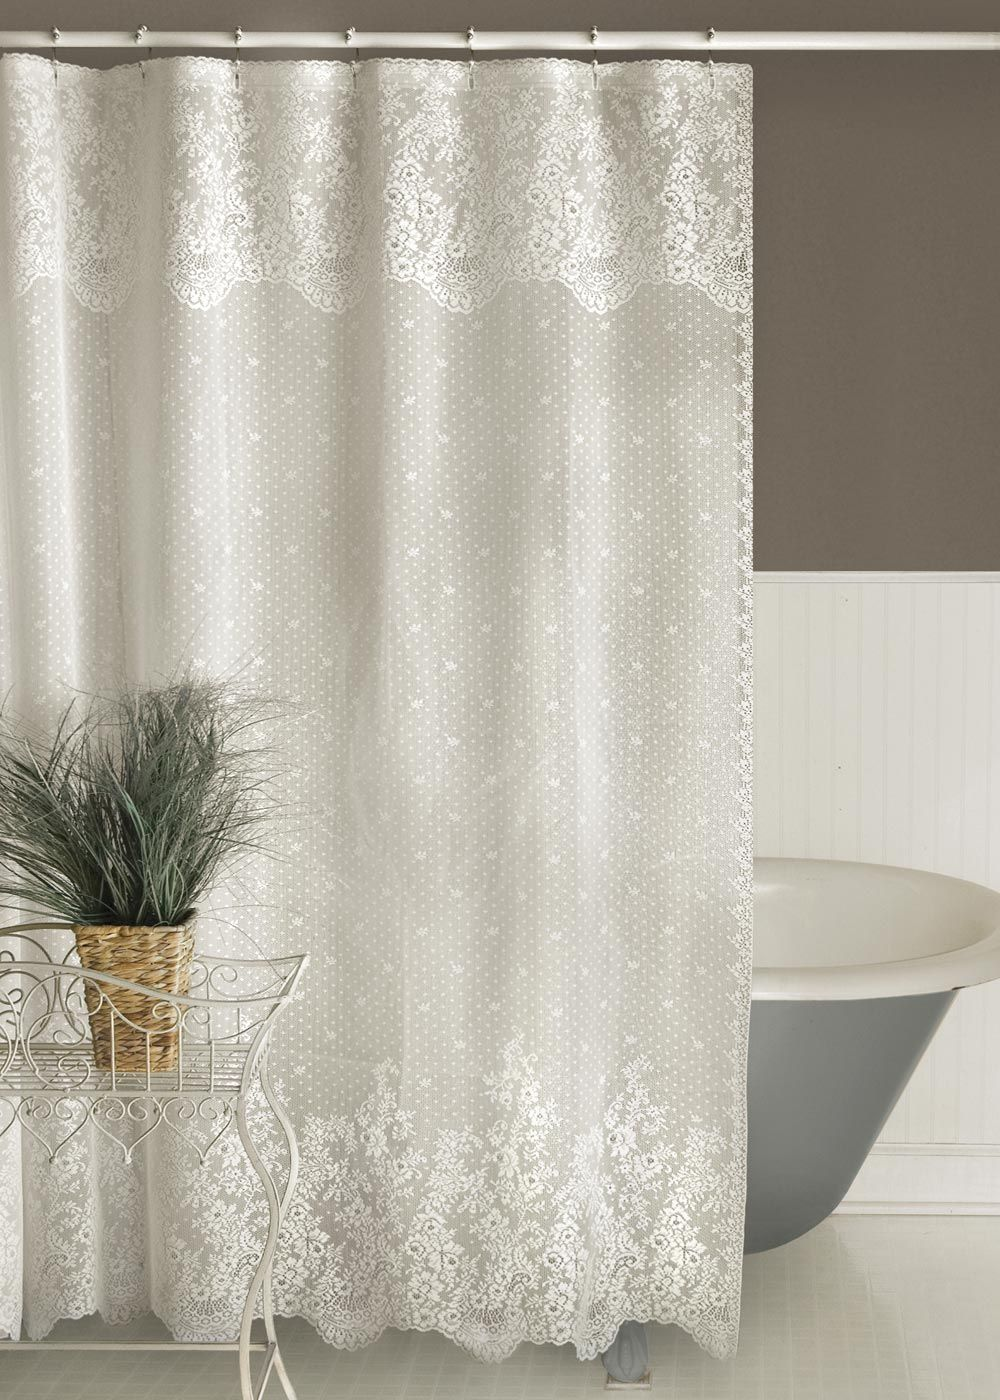 Heritage Lace Floret Lace Shower Curtain With Images Lace